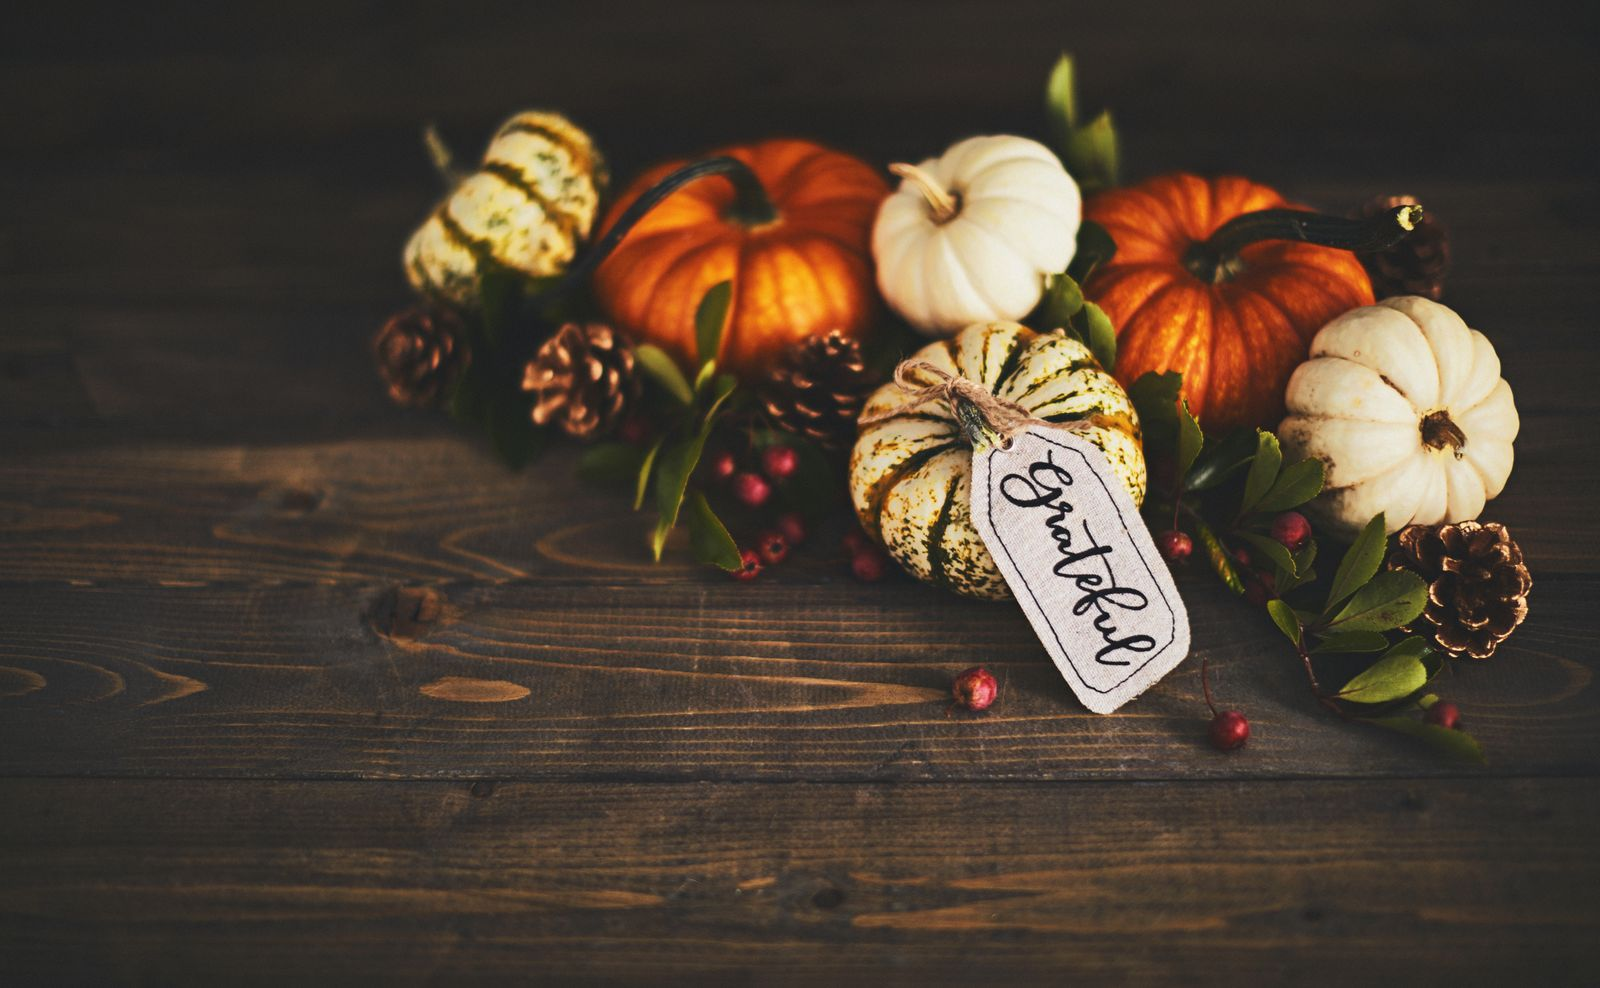 Thanksgiving 2020: Sharing Tremendous Gratitude Amidst the Ongoing Uncertainty